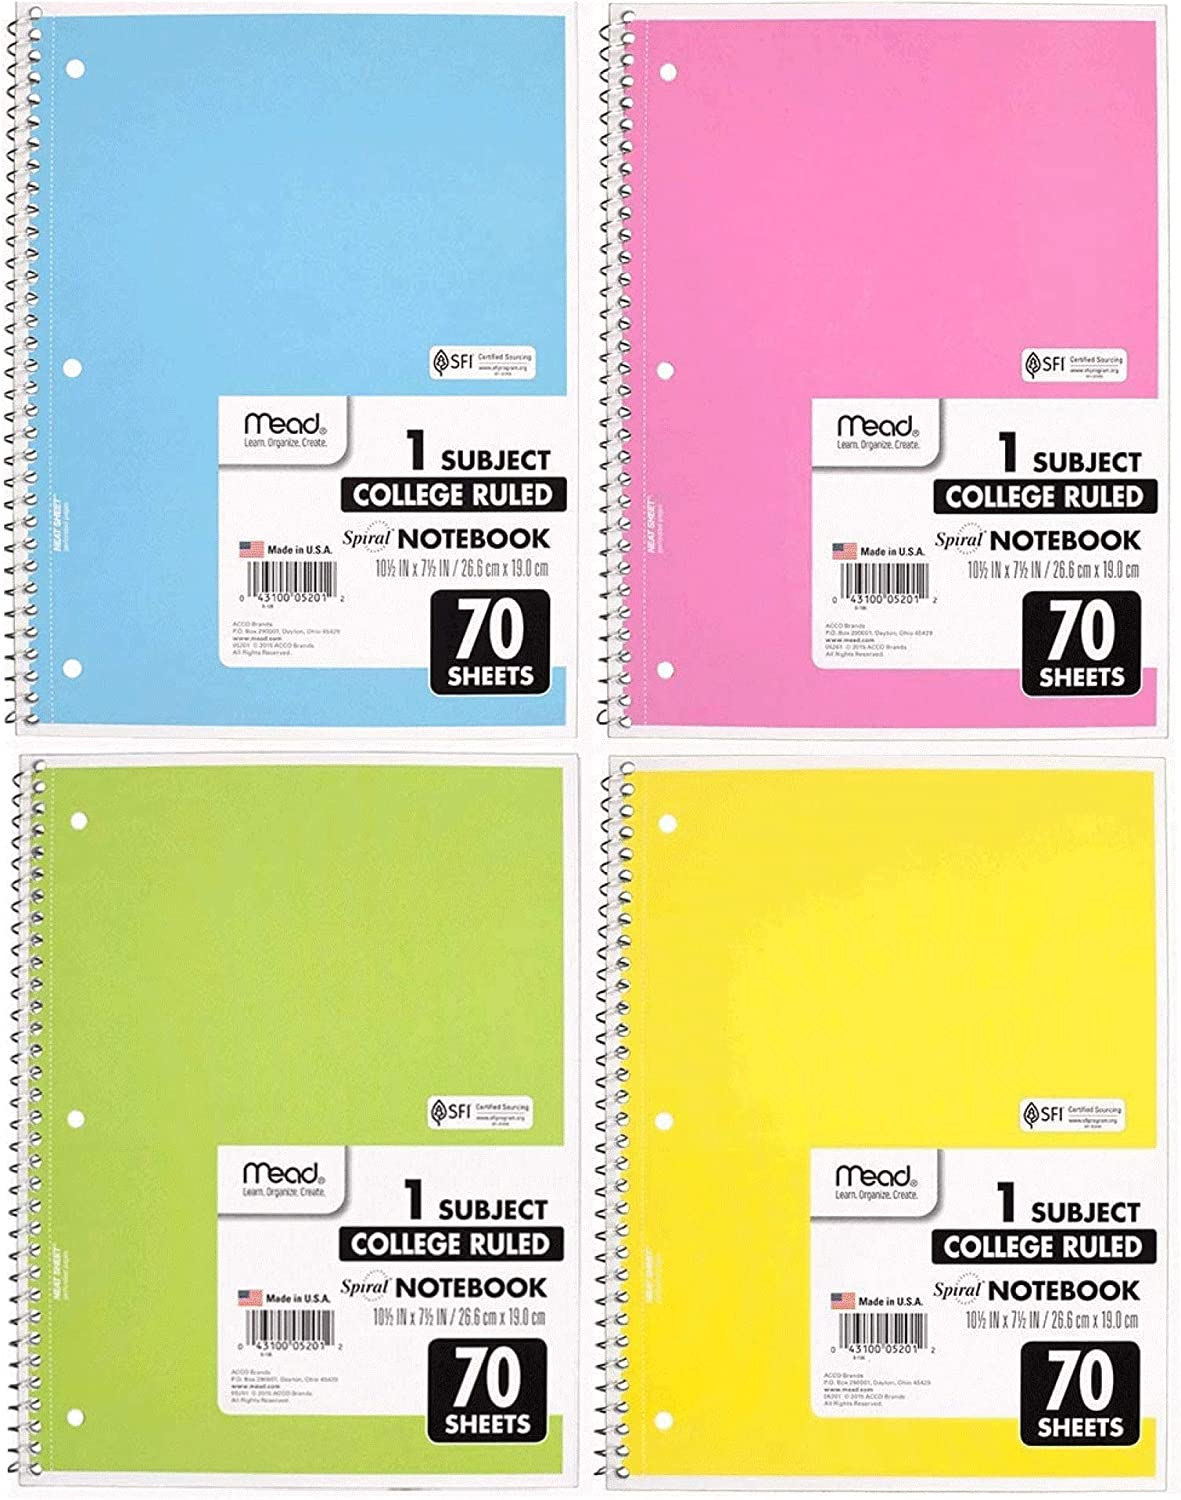 Mead Spiral Notebook 4 Pack of 1-Subject College Ruled, Pastel Color COLOR WILL VARY,Spiral Bound Notebooks, Cute school Notebooks 70 Pages